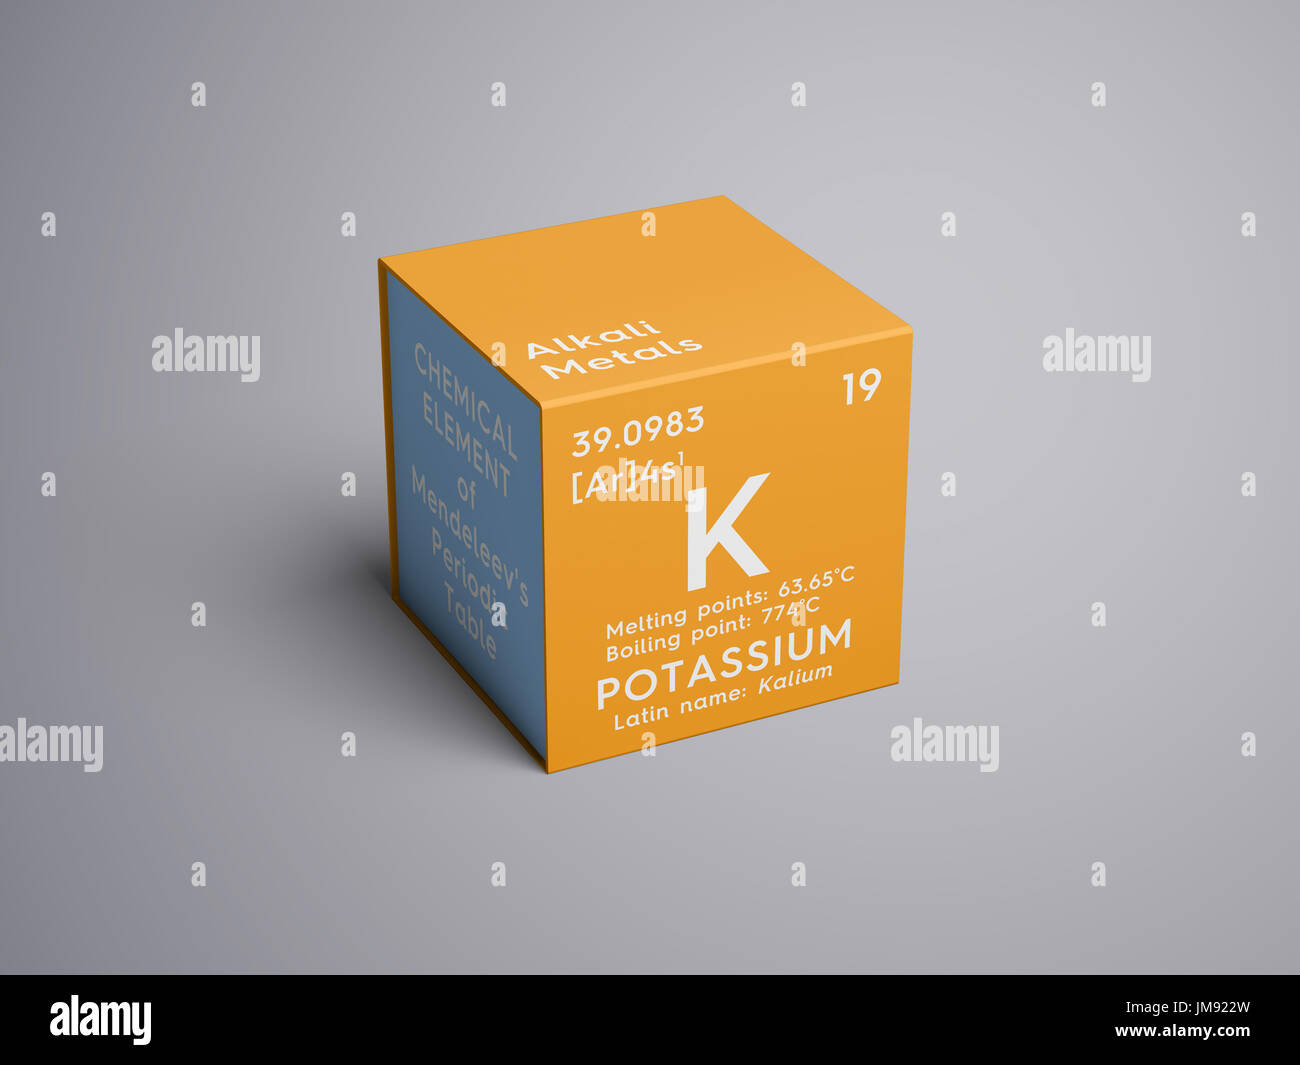 Periodic table of elements list with latin names images periodic kalium periodic table aviongoldcorp potassium kalium alkali metals chemical element of mendeleev s gamestrikefo images gamestrikefo Image collections